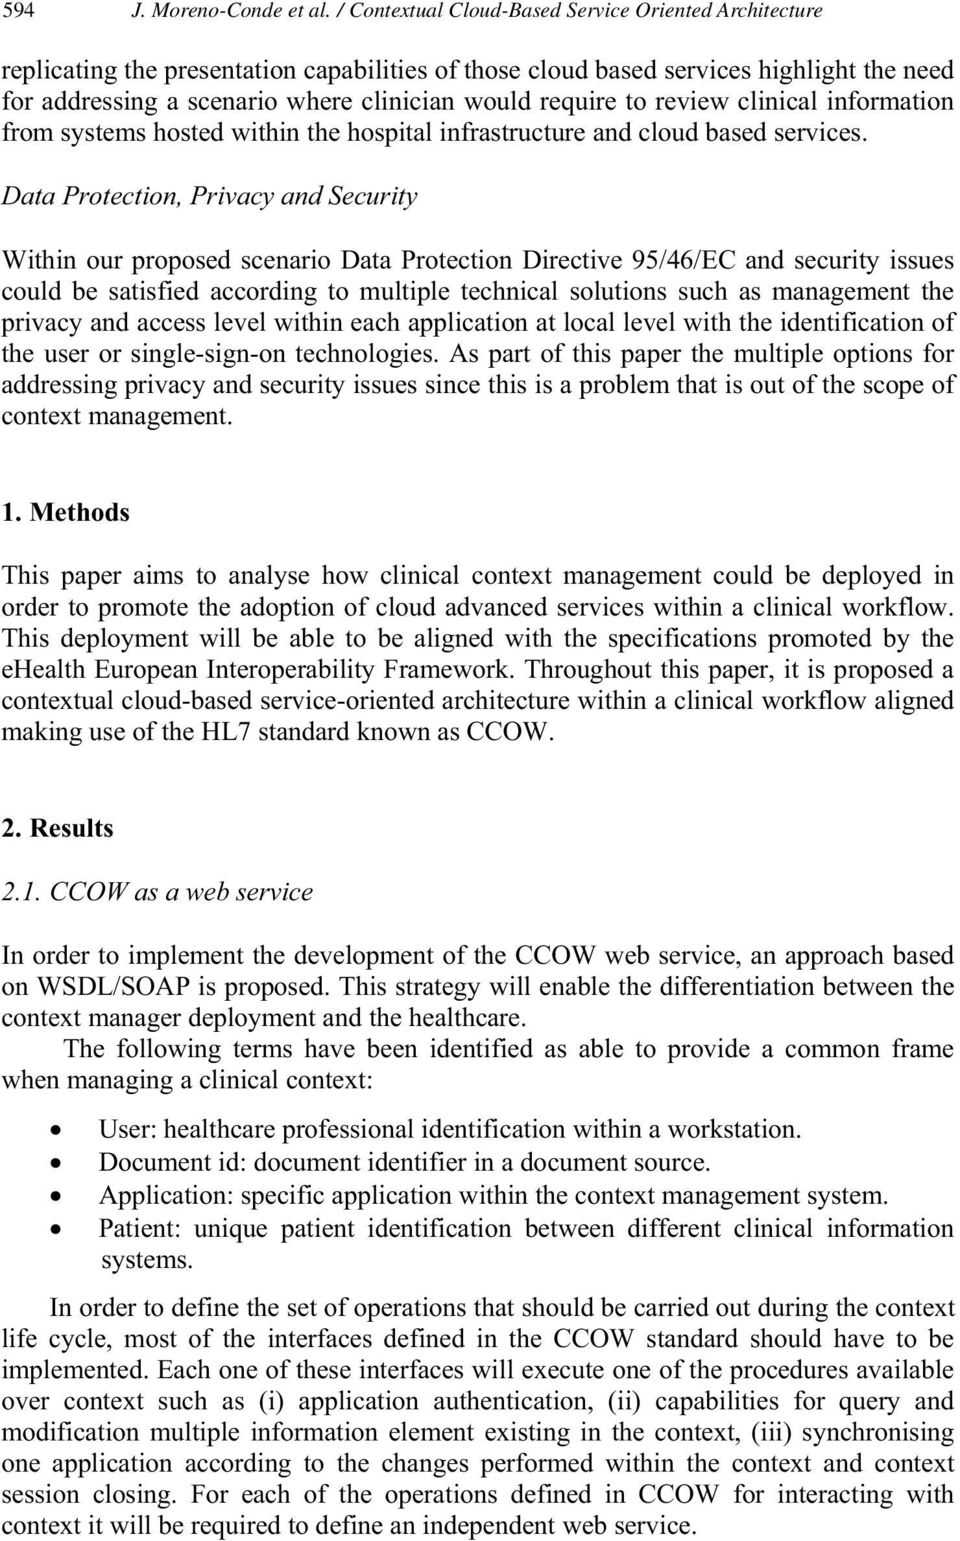 require to review clinical information from systems hosted within the hospital infrastructure and cloud based services.